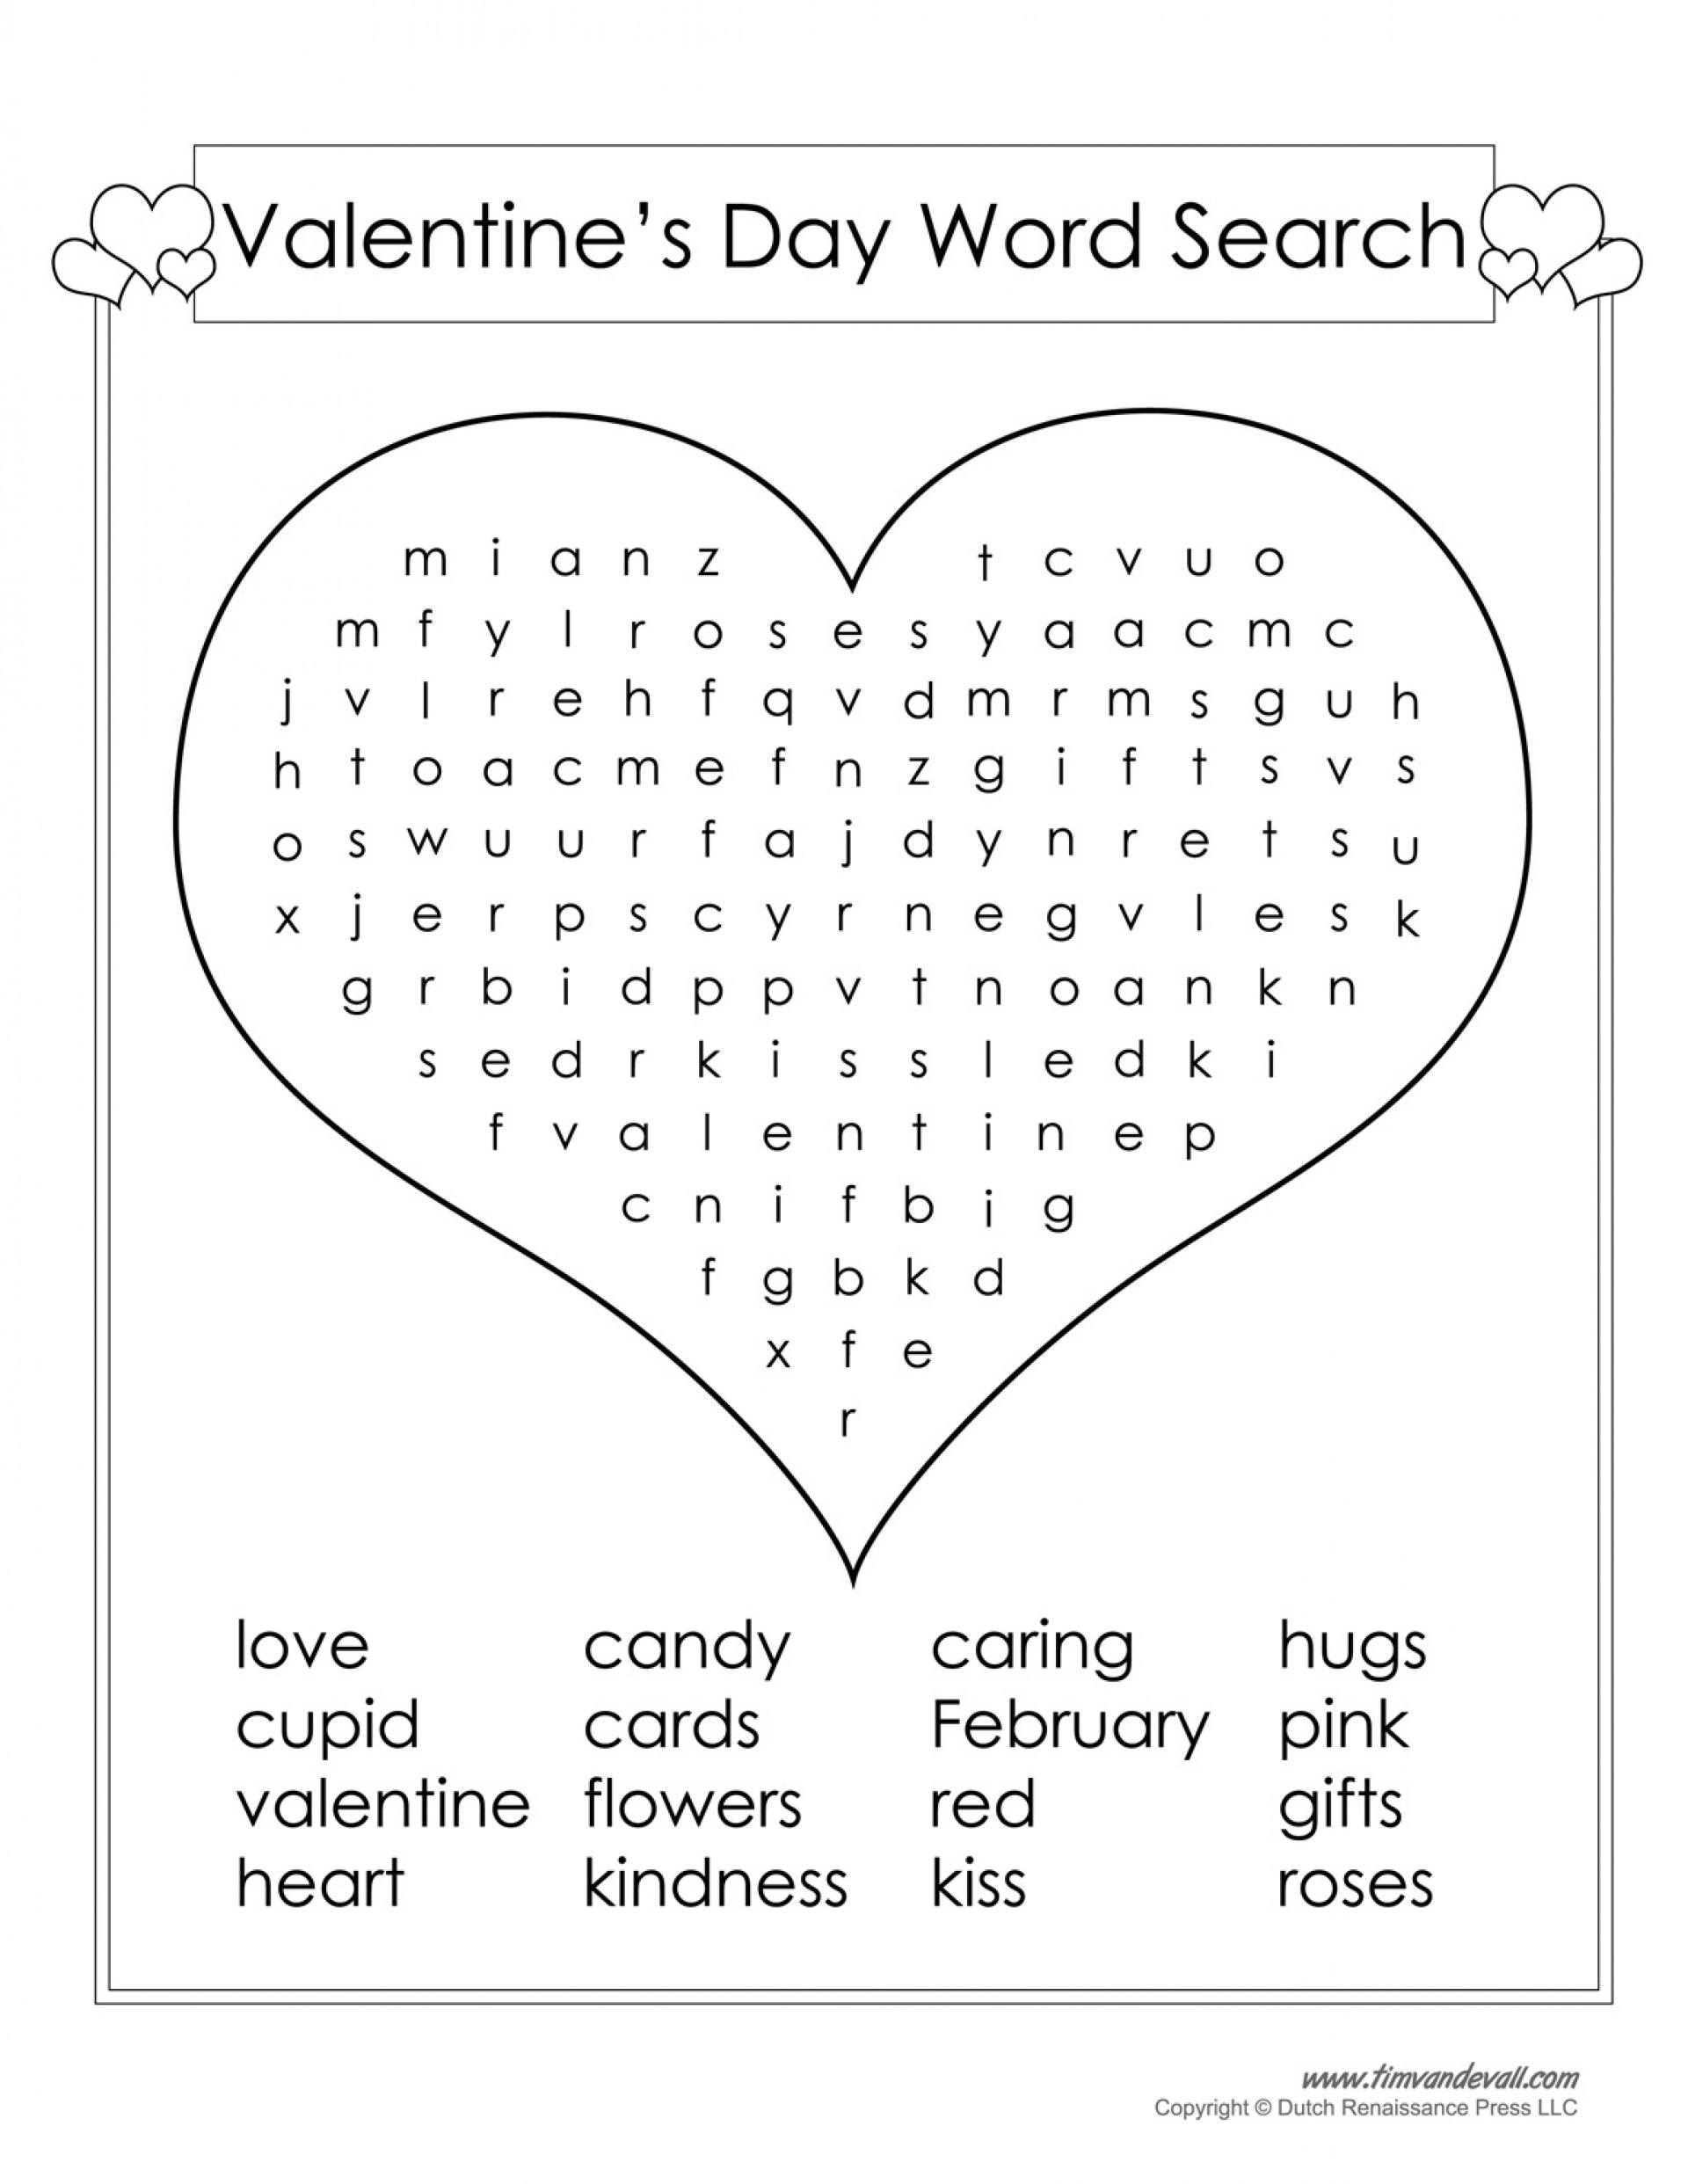 Valentines Day Word Search Large Light Pink Valentine S Crossword - Printable Valentines Crossword